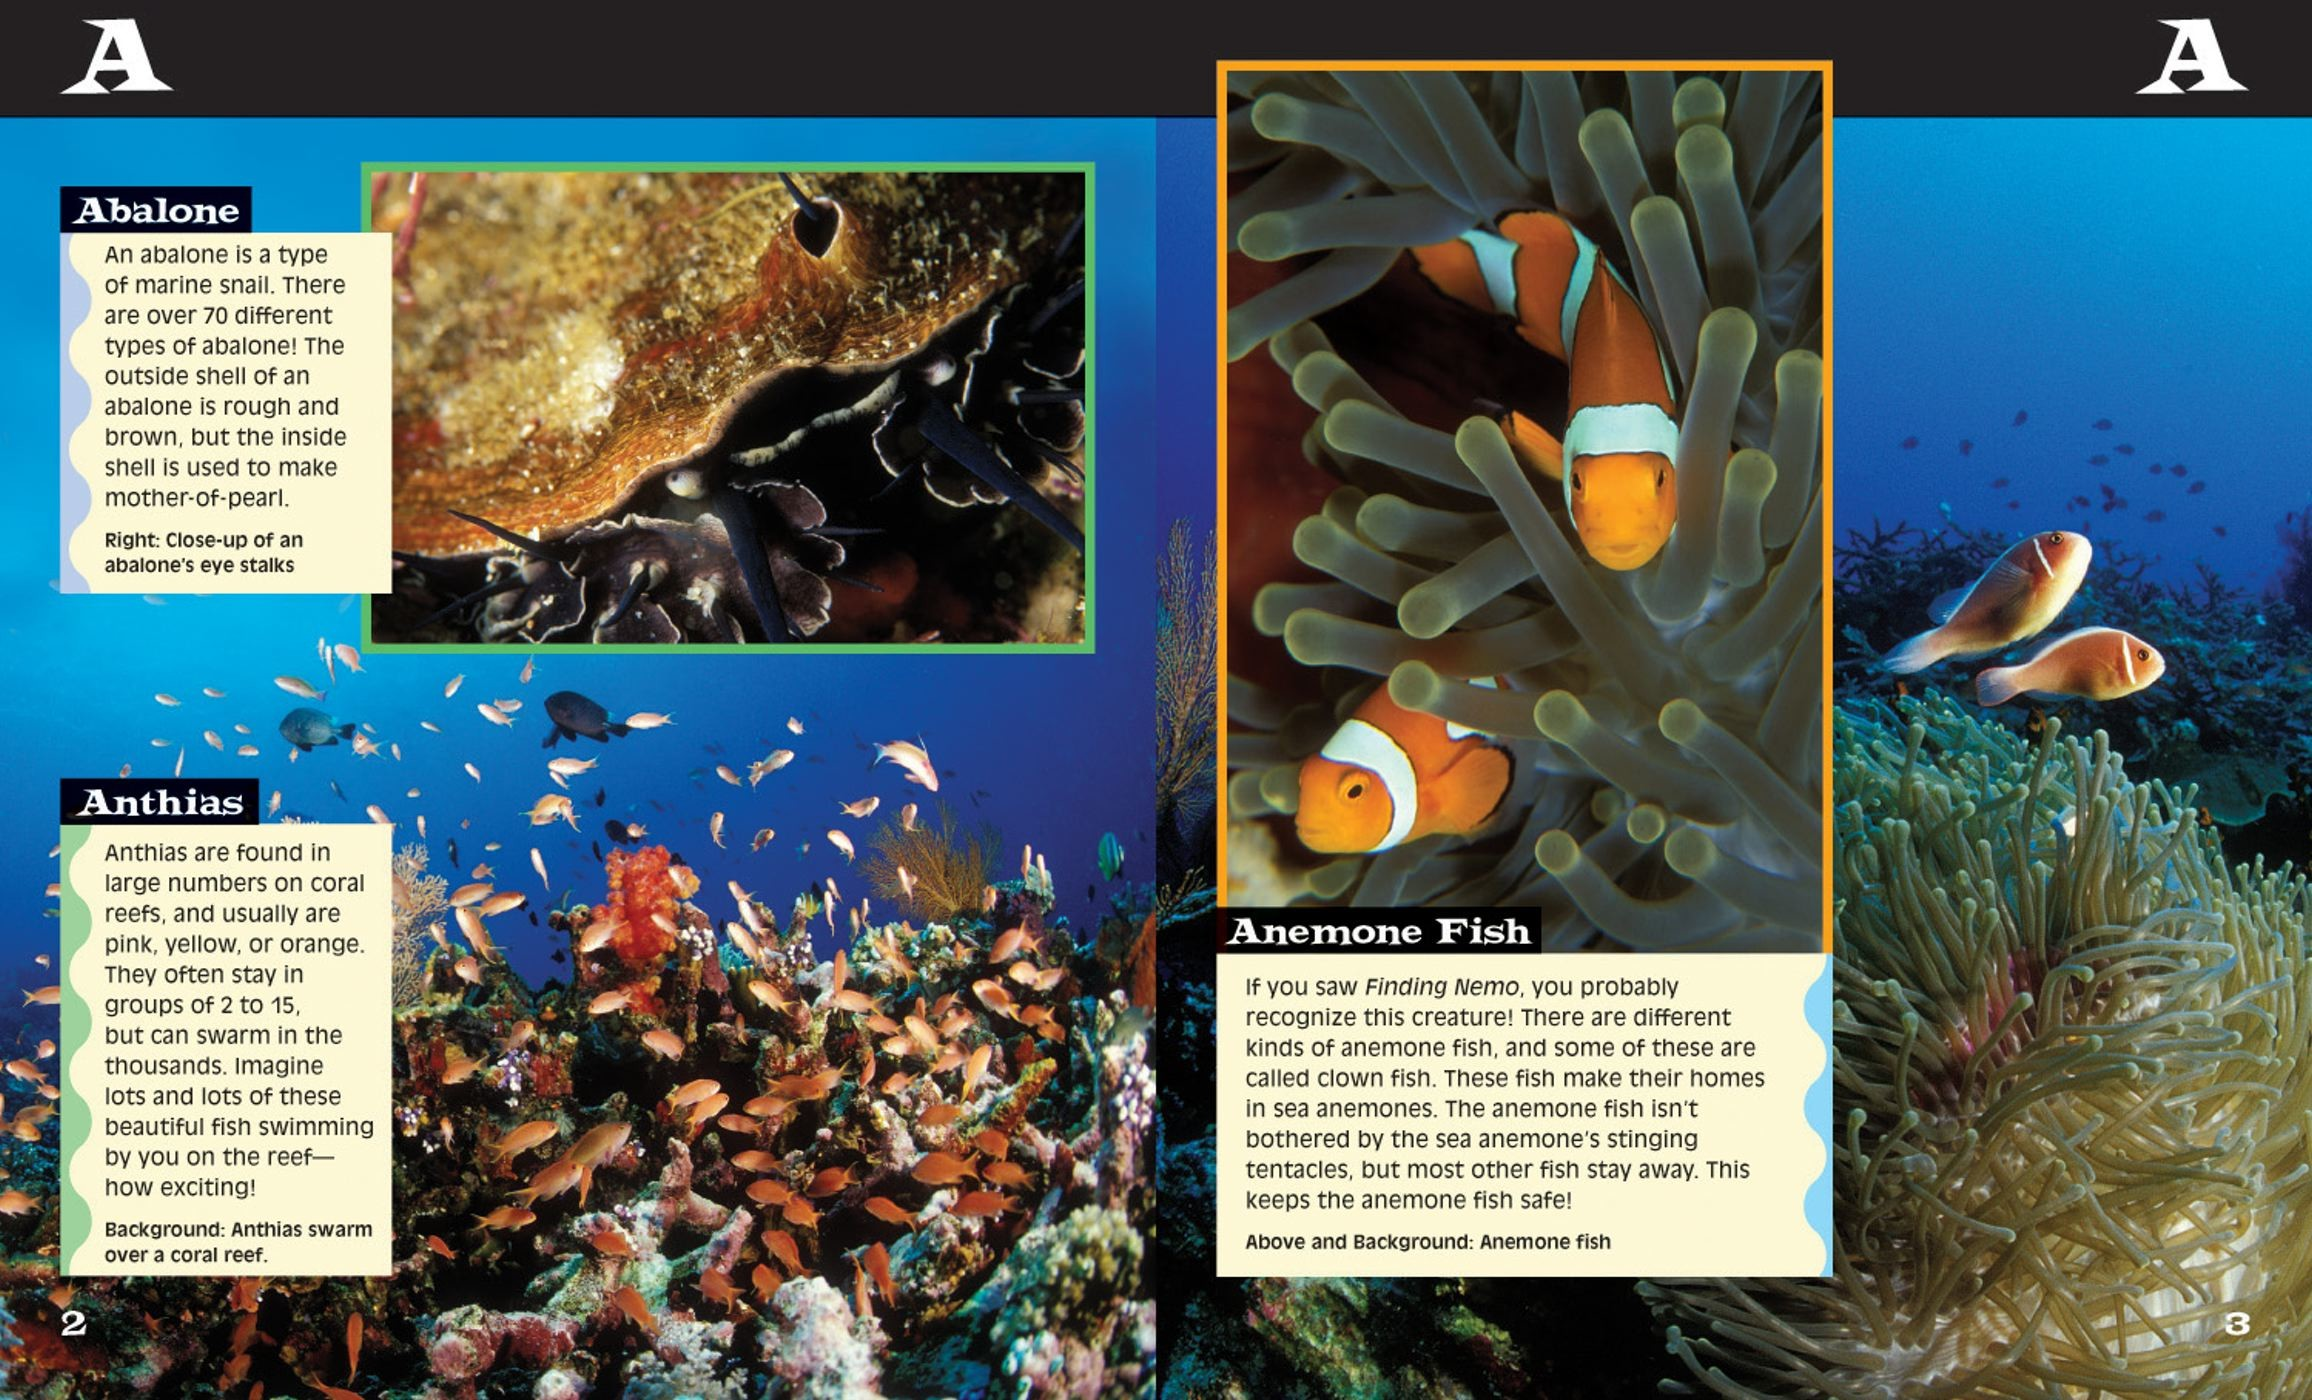 Ocean life from a to z book and dvd 9780794412227.in01